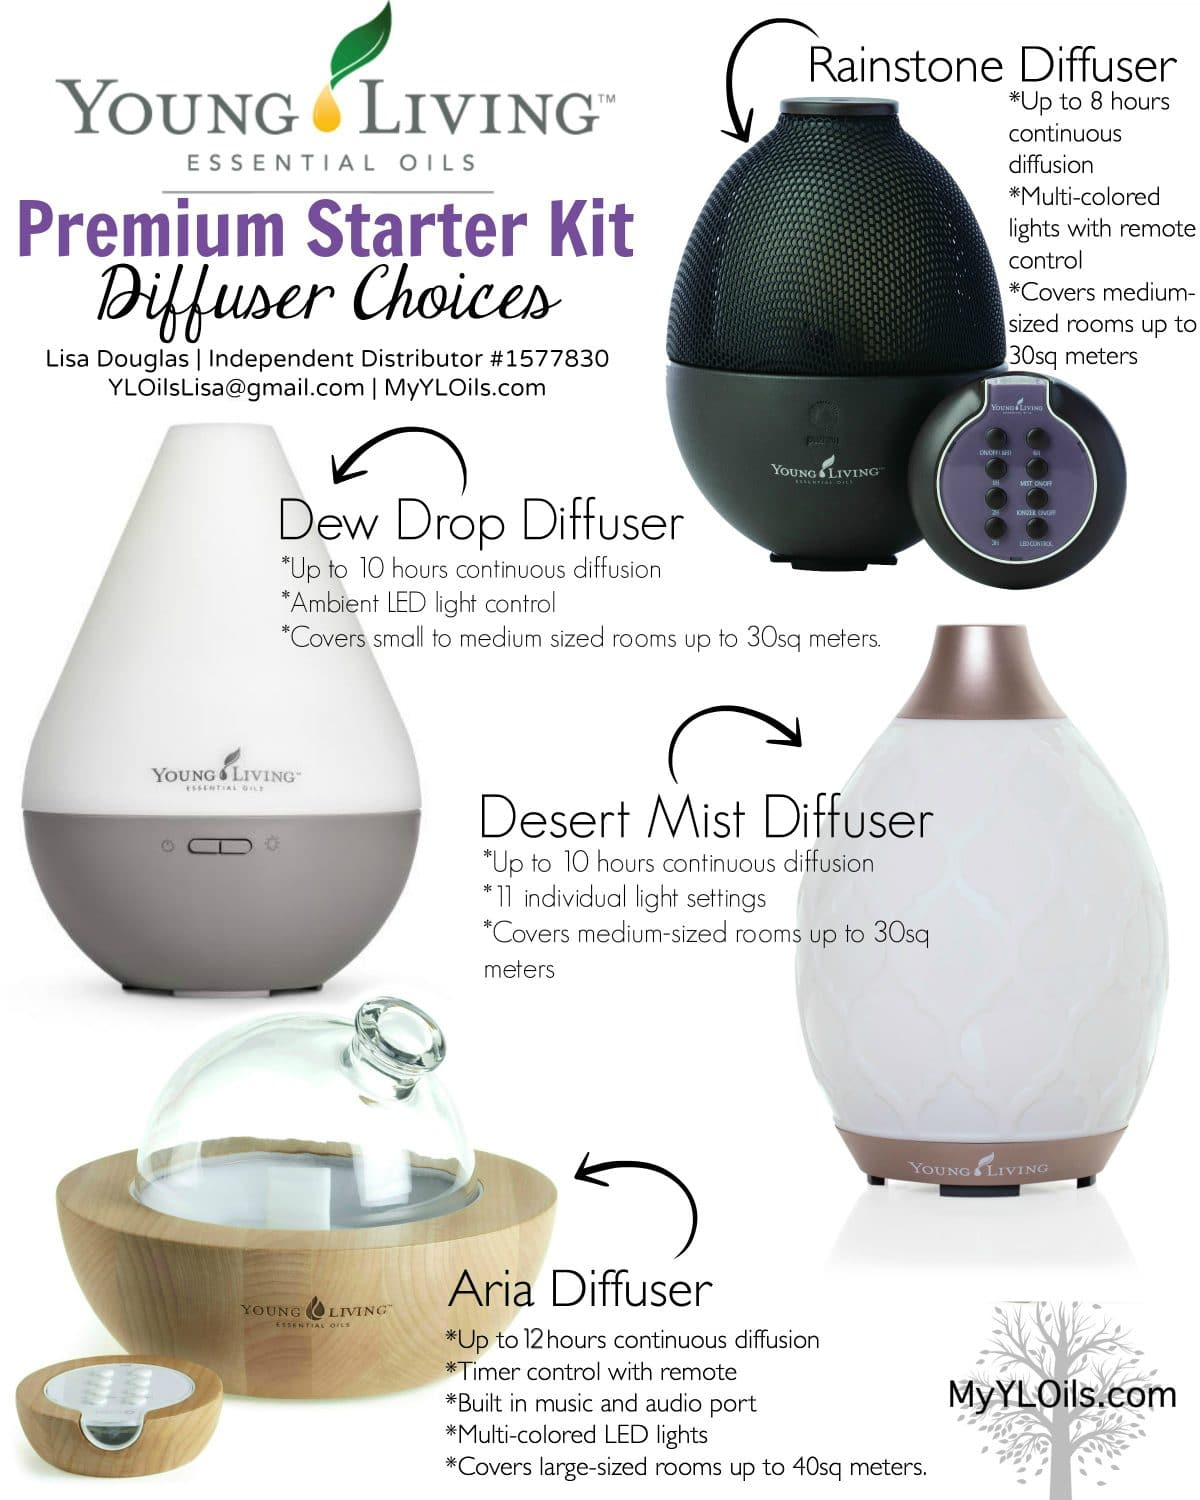 2019 Young Living Premium Starter Kit Diffuser Choices